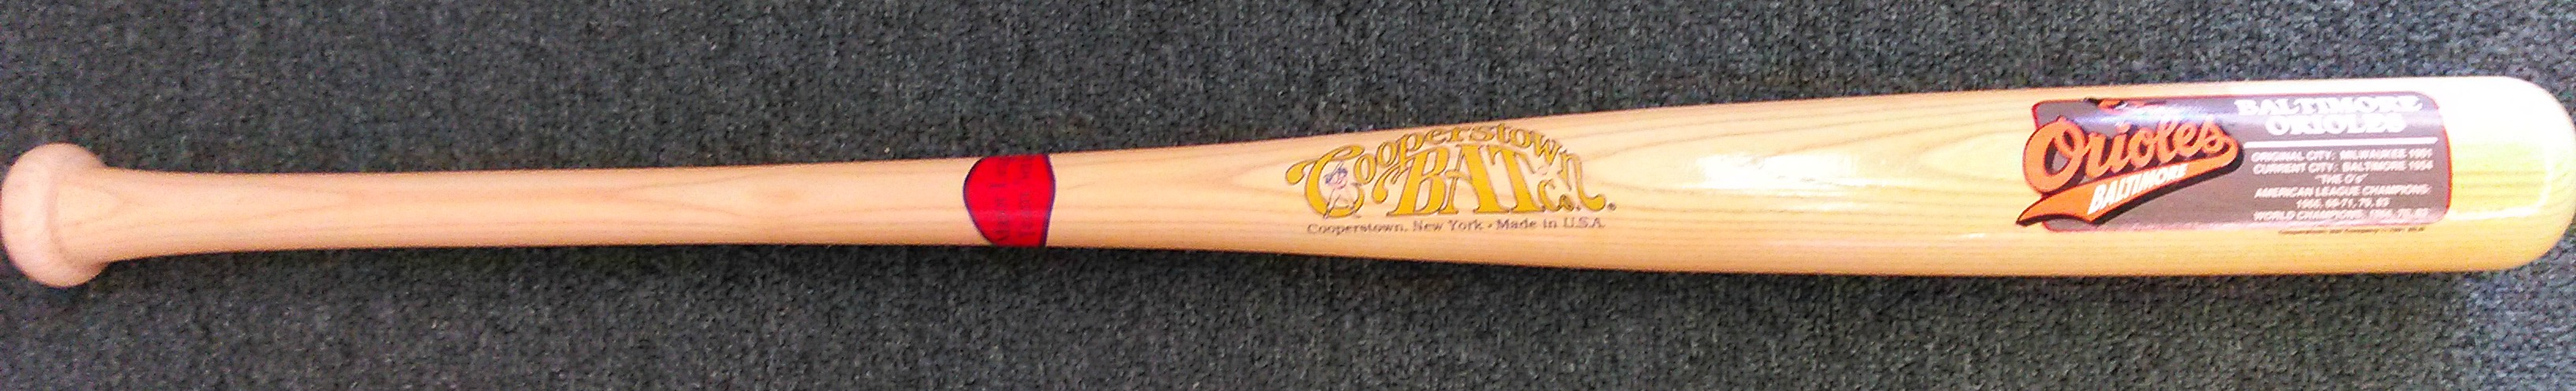 Baltimore Orioles Cooperstown Collection Orioles Bat